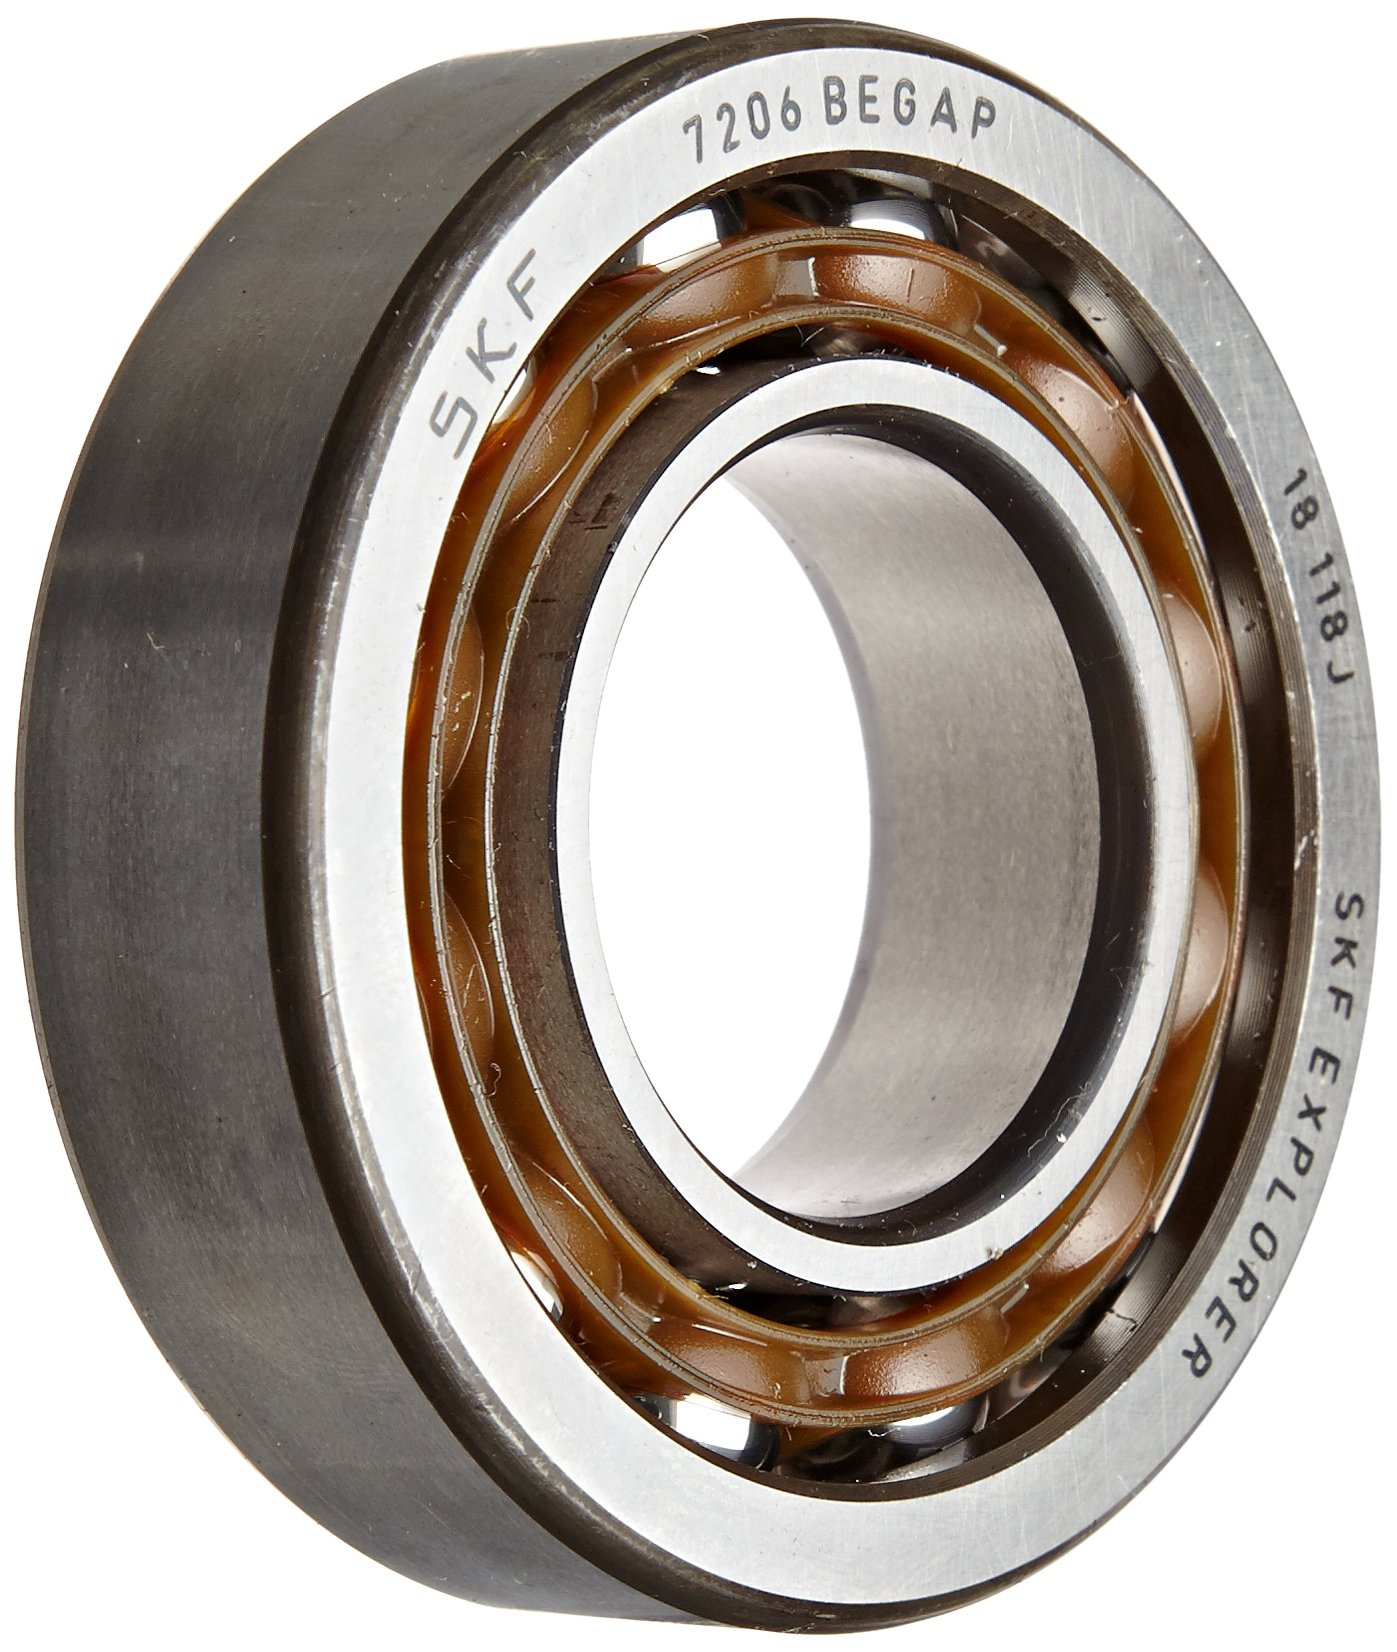 SKF 7203 BEGAP Light Series Angular Contact Ball Bearing, Universal Mounting, ABEC 1 Precision, 40° Contact Angle, Light Preload, Open, Polyamide/Nylon Cage, Normal Clearance, 17mm Bore, 40mm OD, 12mm Width